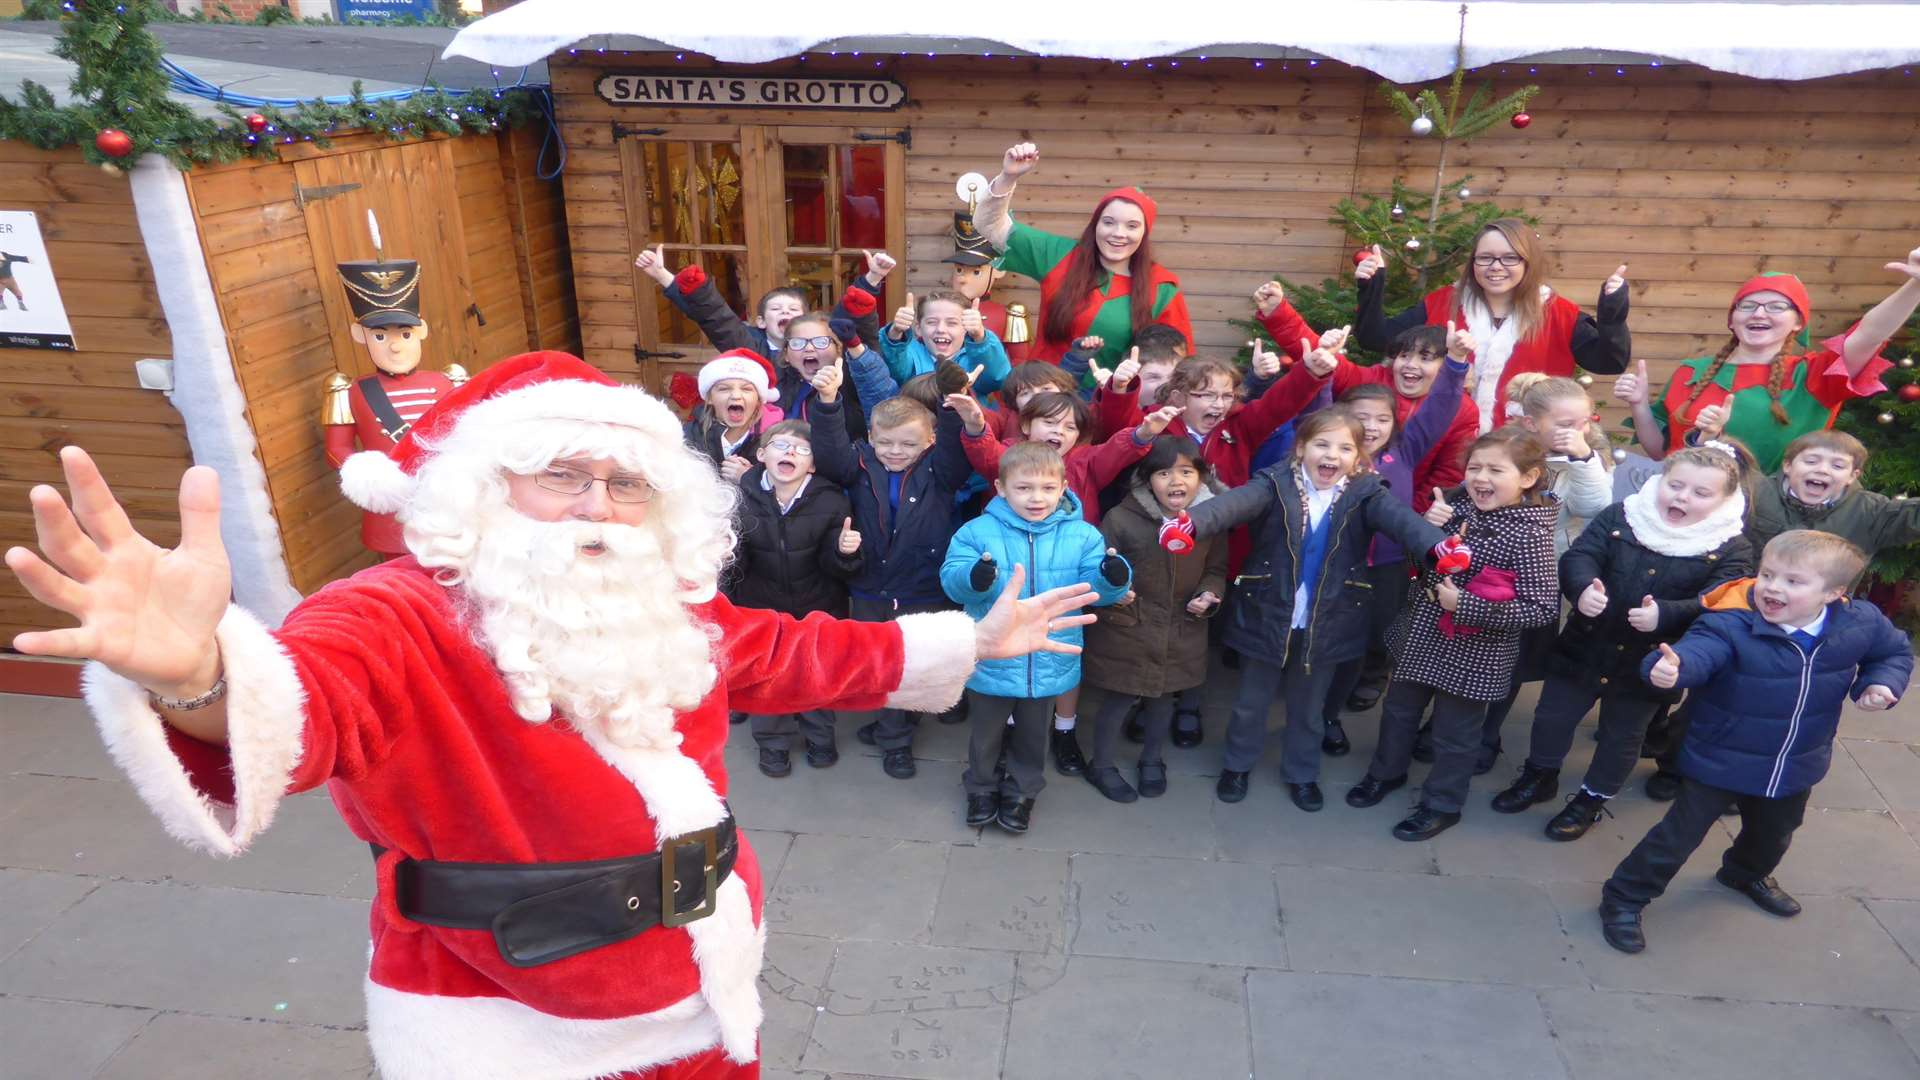 Class 3 of St Peter's Methodist Primary School collect their prize of a visit to Santa's grotto in Whitefriars after winning a walk to school challenge.